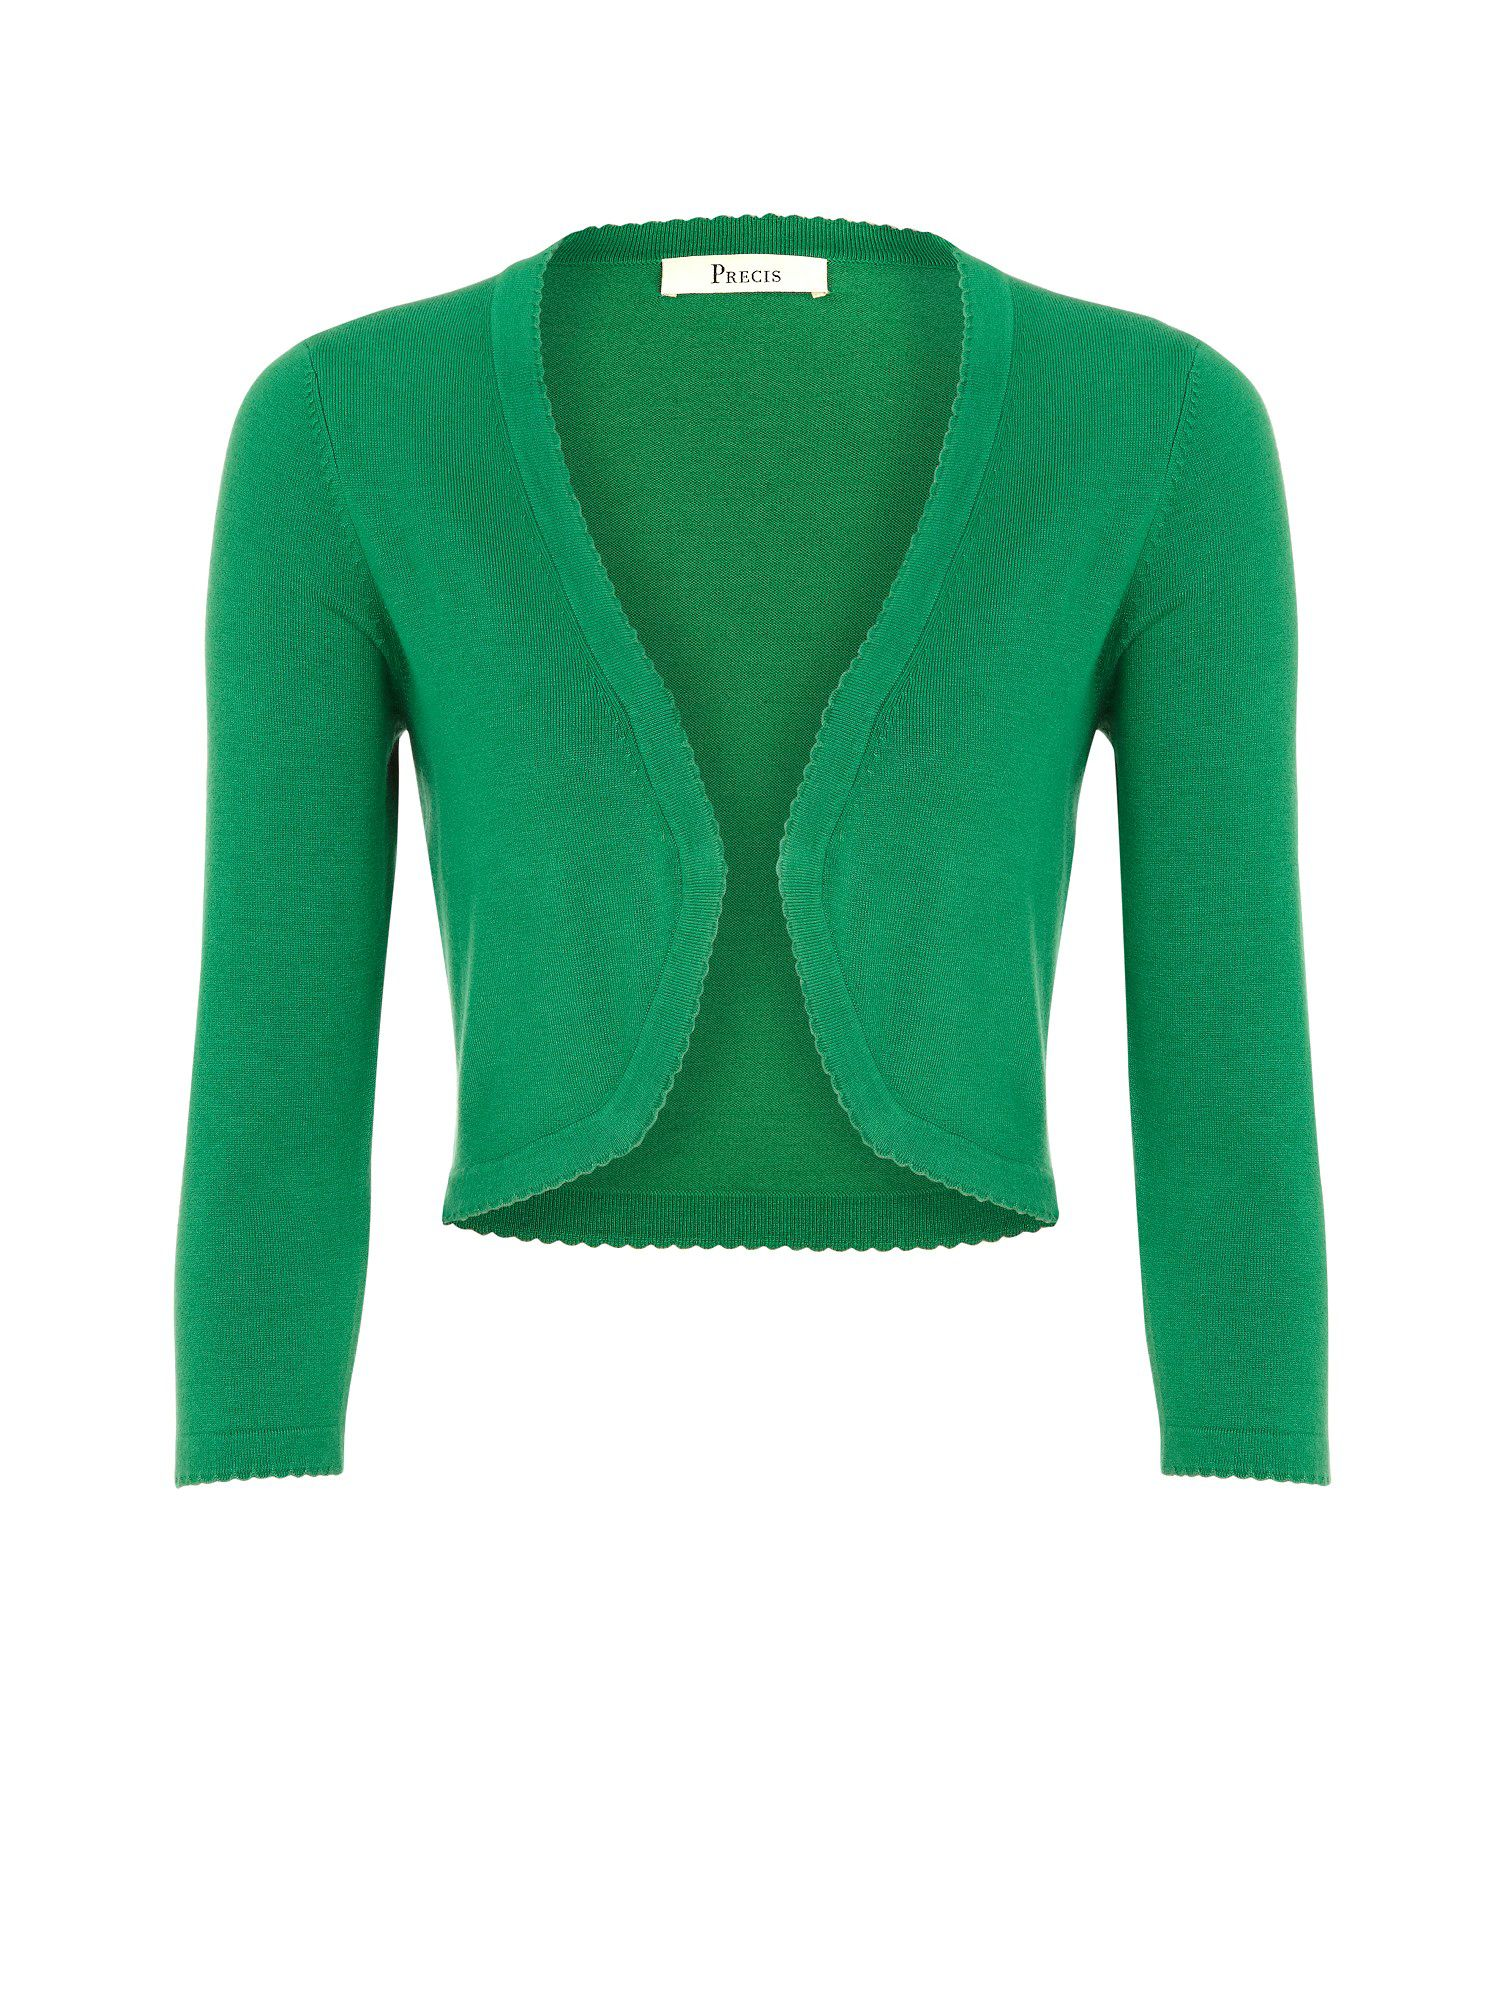 Emerald picot edge shrug